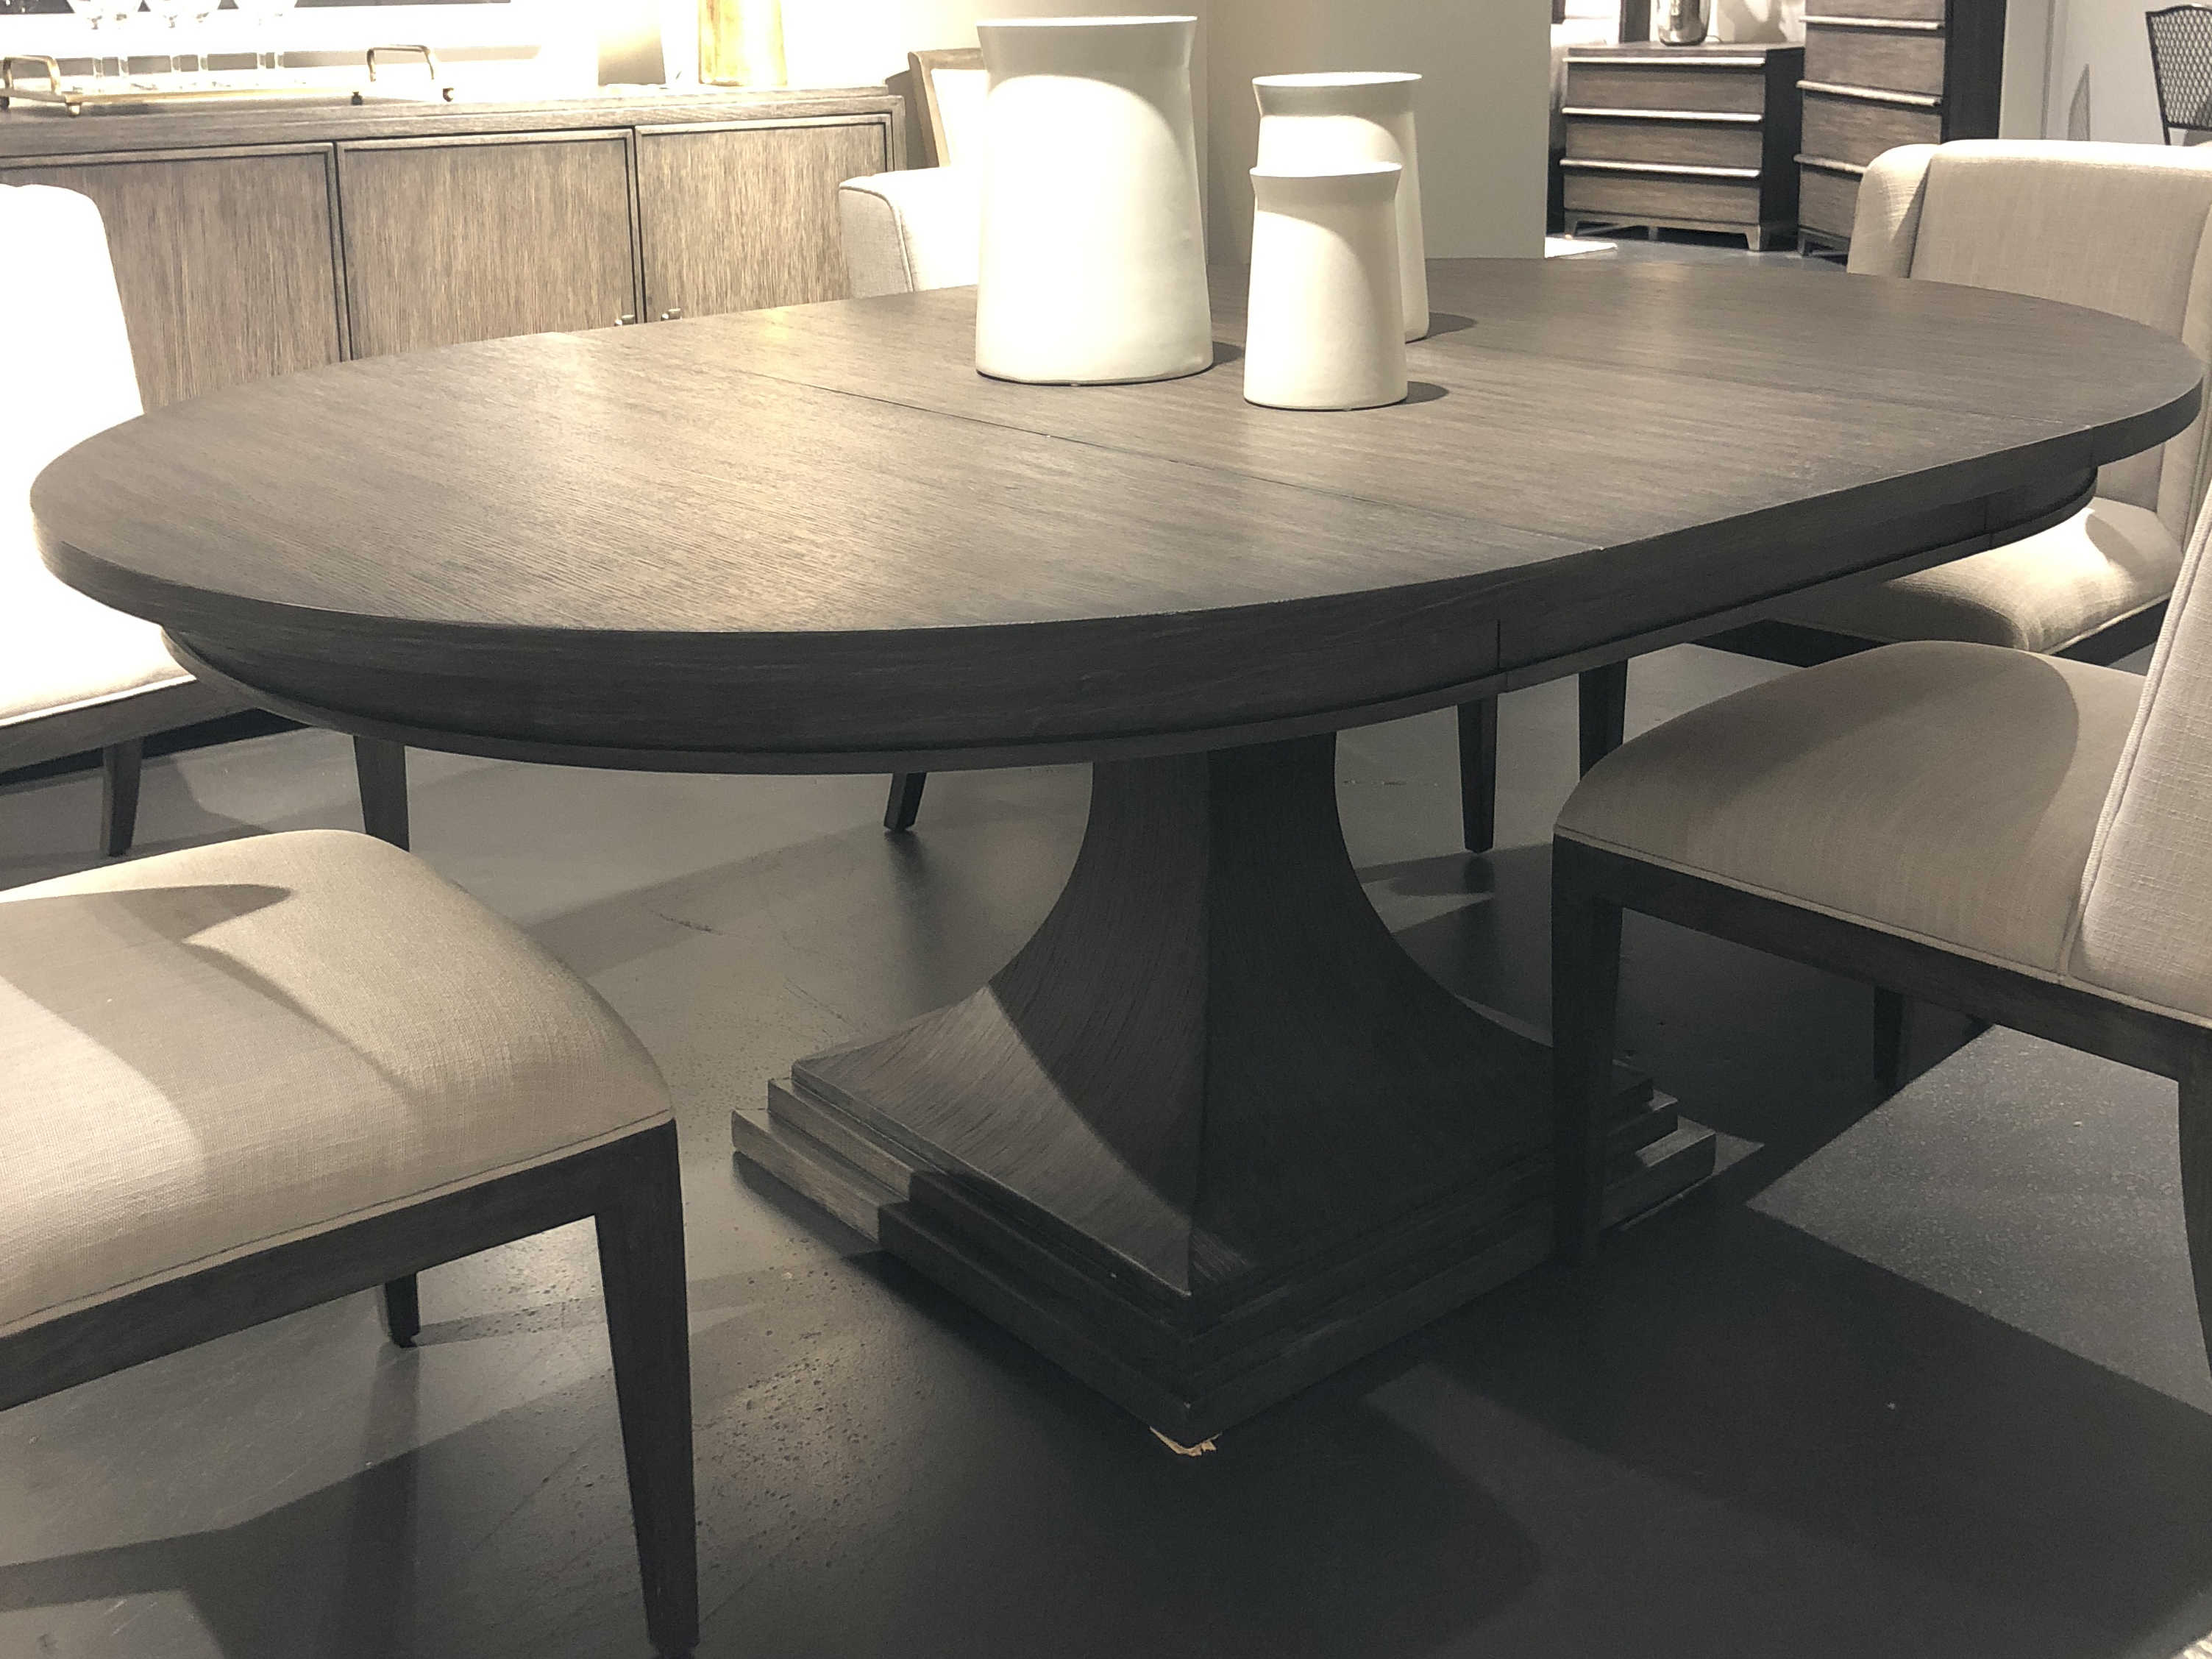 Stanley Furniture Horizon 56\'\' Wide Round Dining Table